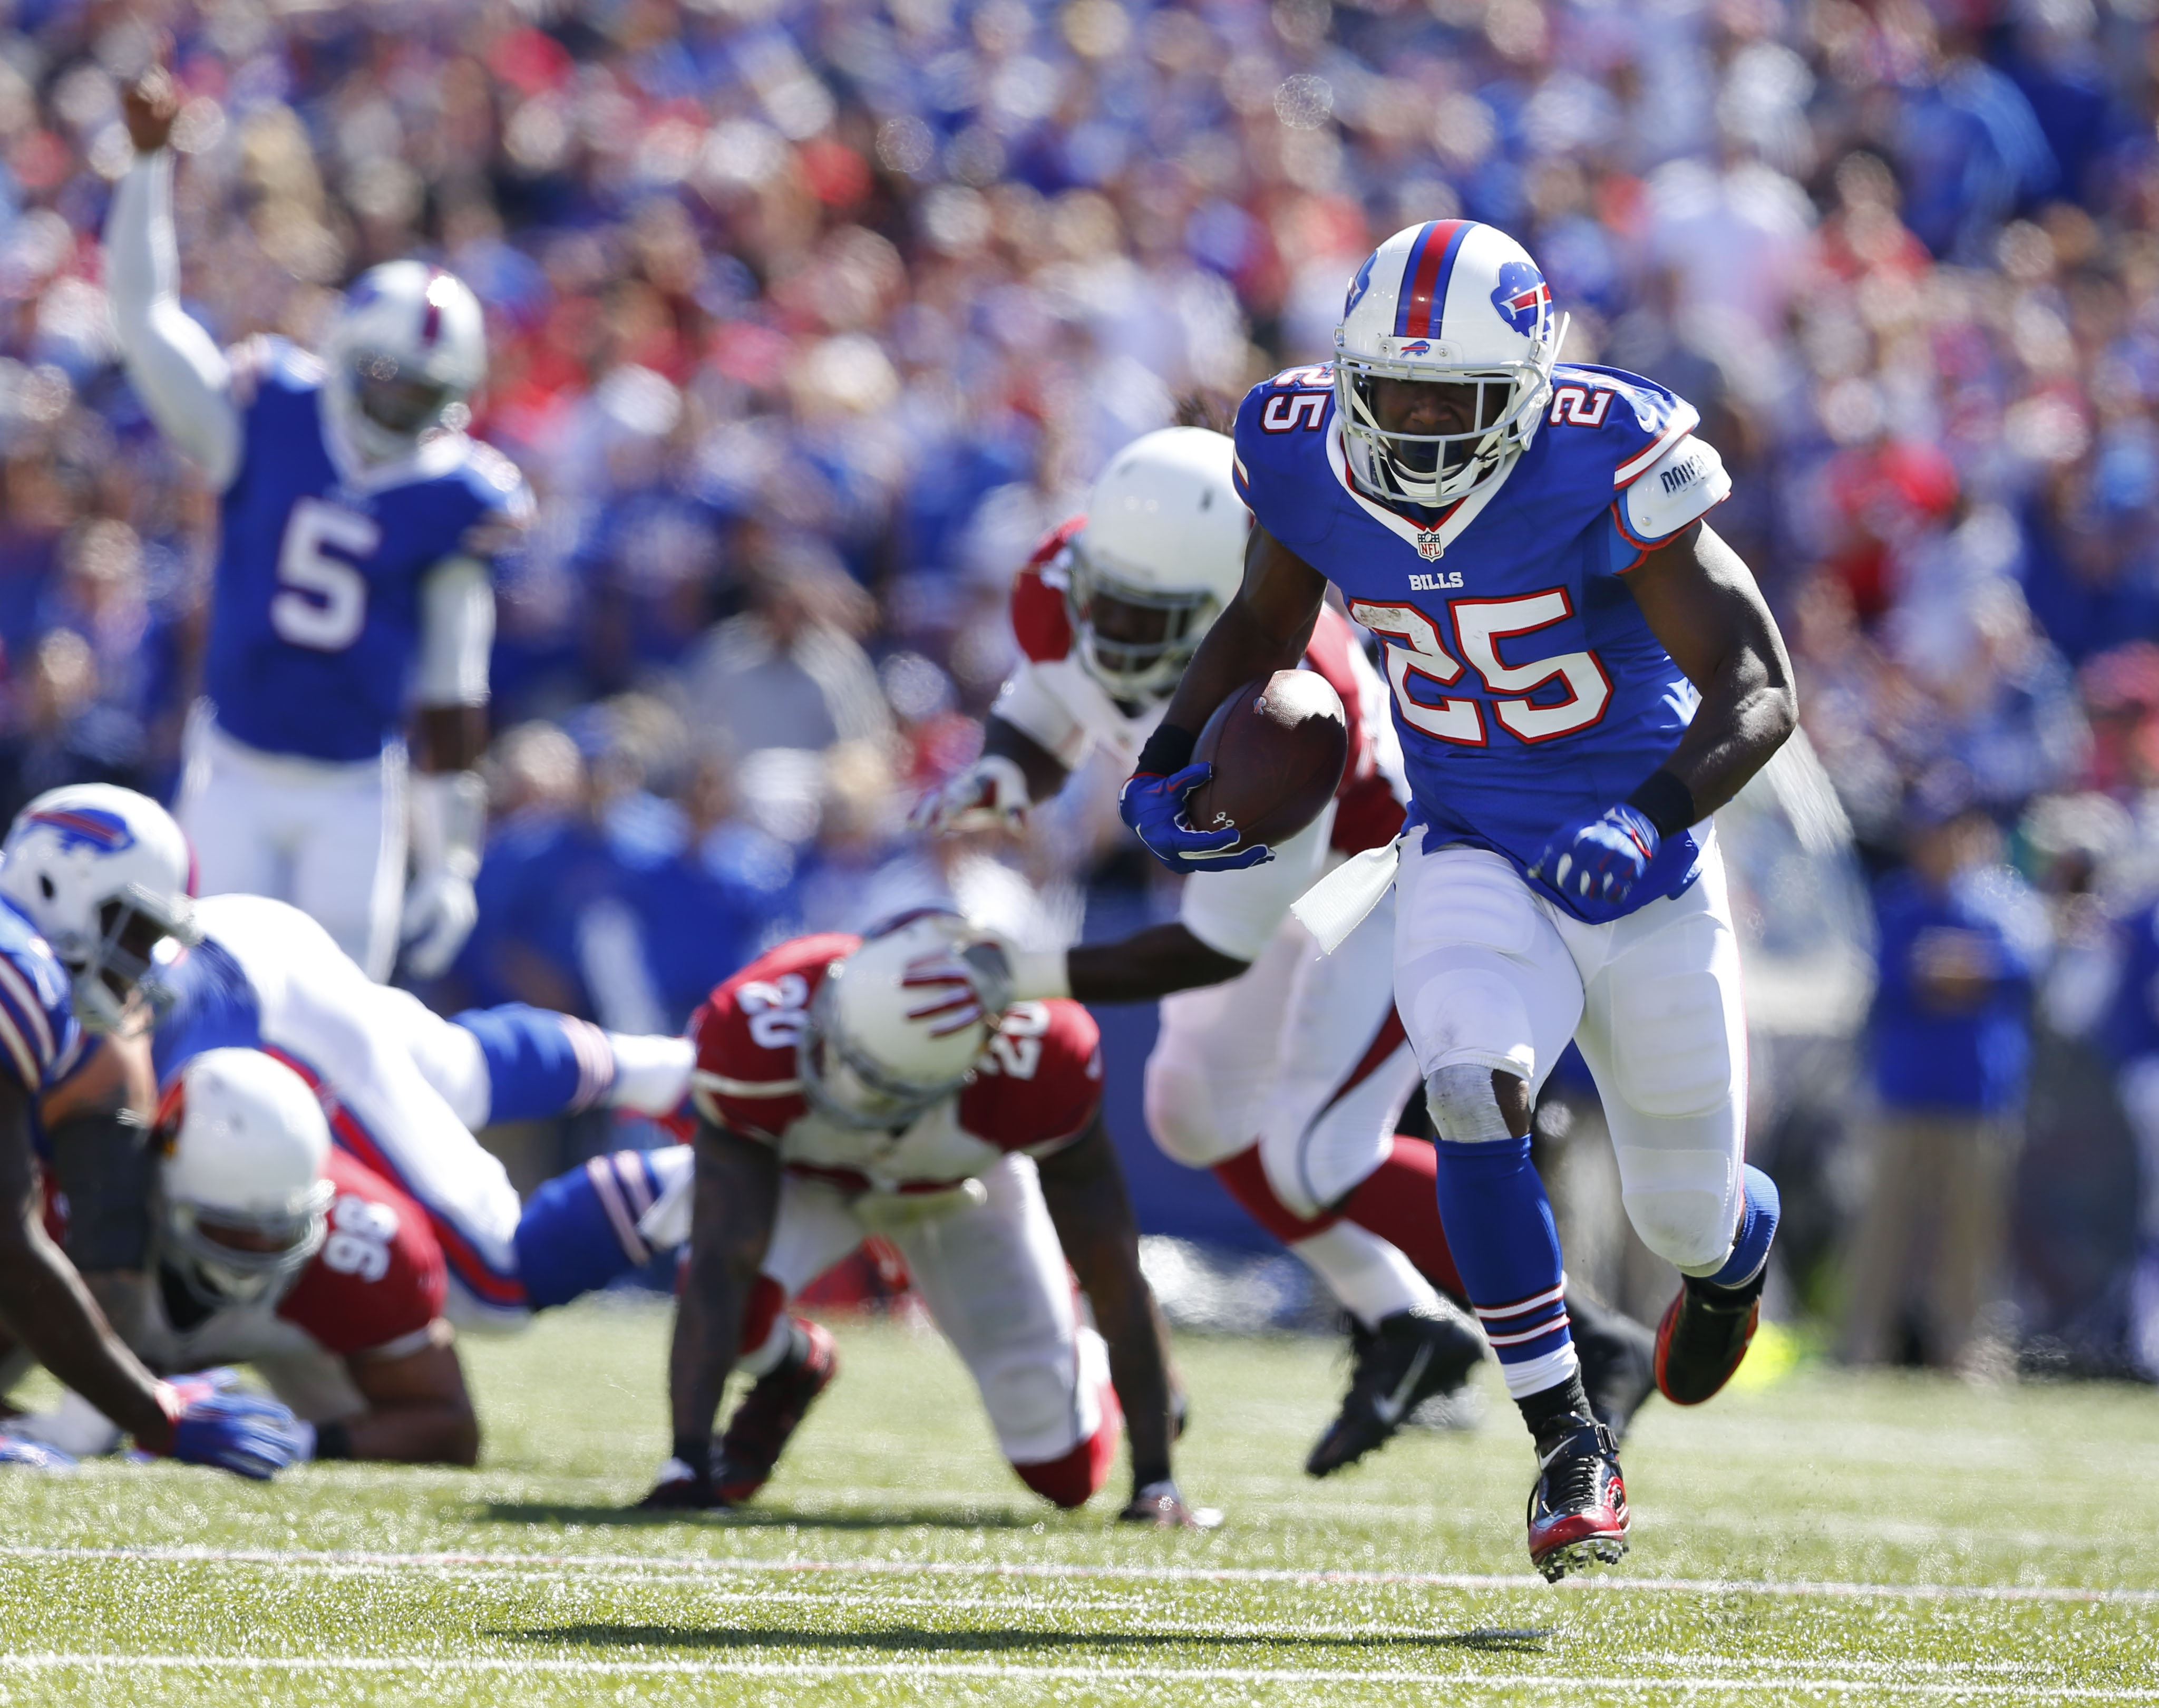 LeSean McCoy said on SportsCenter that he'll play on Sunday despite hurting his hand on Friday.